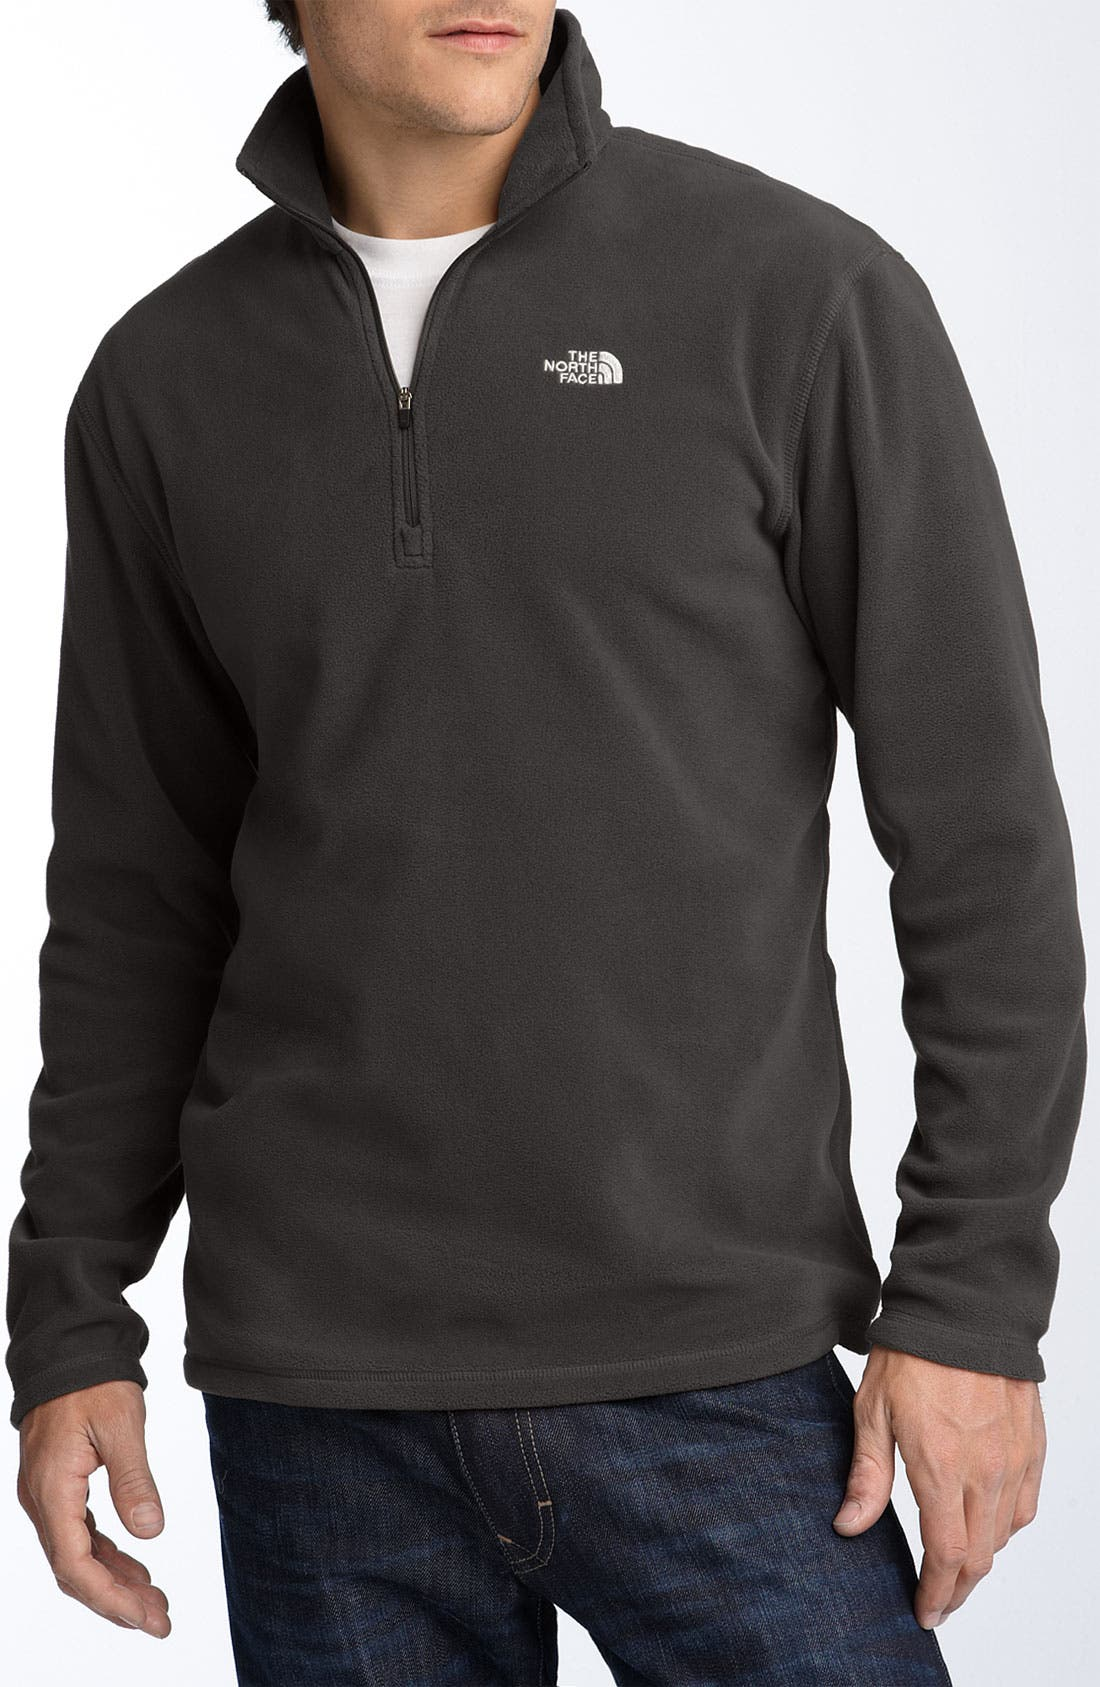 Main Image - The North Face 'TKA 100 Microvelour Glacier' Quarter Zip Fleece Pullover